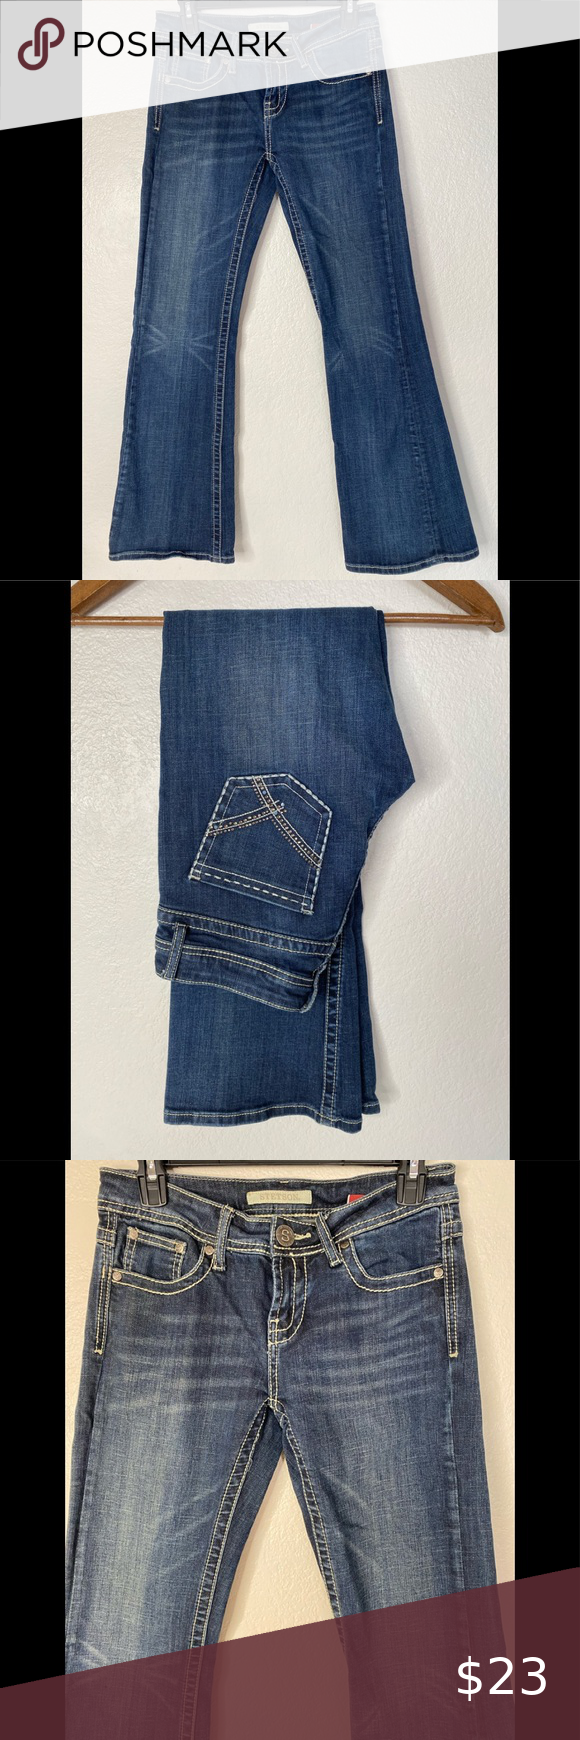 """Stetson Womens Classic Bootcut Blue Jeans size 4 Stetson Womens Classic Bootcut Blue Jeans  style 11-054-0816-0723- BU  No. 816 size 4 Reg Actual Measurements: 30x32 Waist 30"""" Rise 8"""" Hips 36"""" Length 32"""" Embelished rhinestones back pockets  Great pre-owned Condition, see pictures for best description of condition, comes from a clean smoke free environment  Happy to answer any questions  Thank you for looking  Quick handling time Stetson Jeans Boot Cut"""